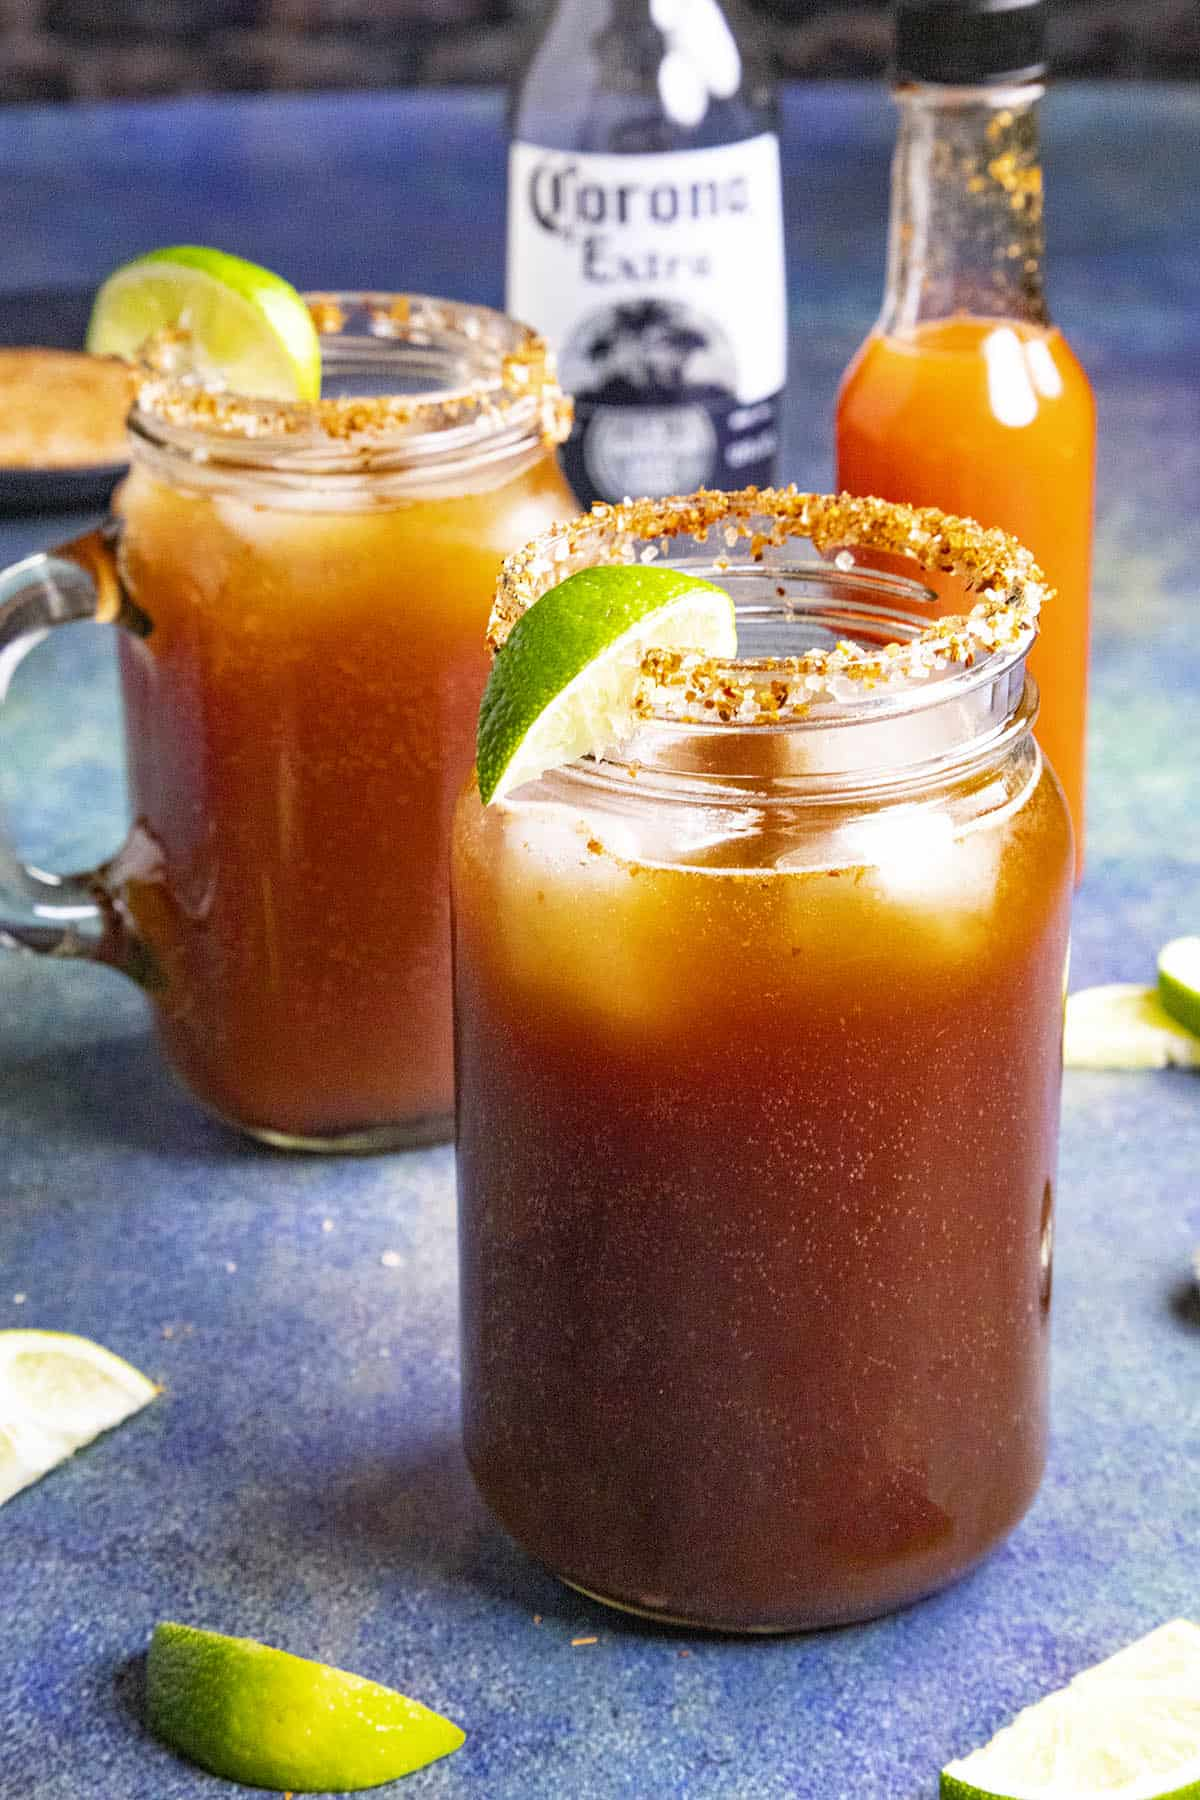 Michelada Recipe – Spicy Mexican Beer and Tomato Juice Cocktail